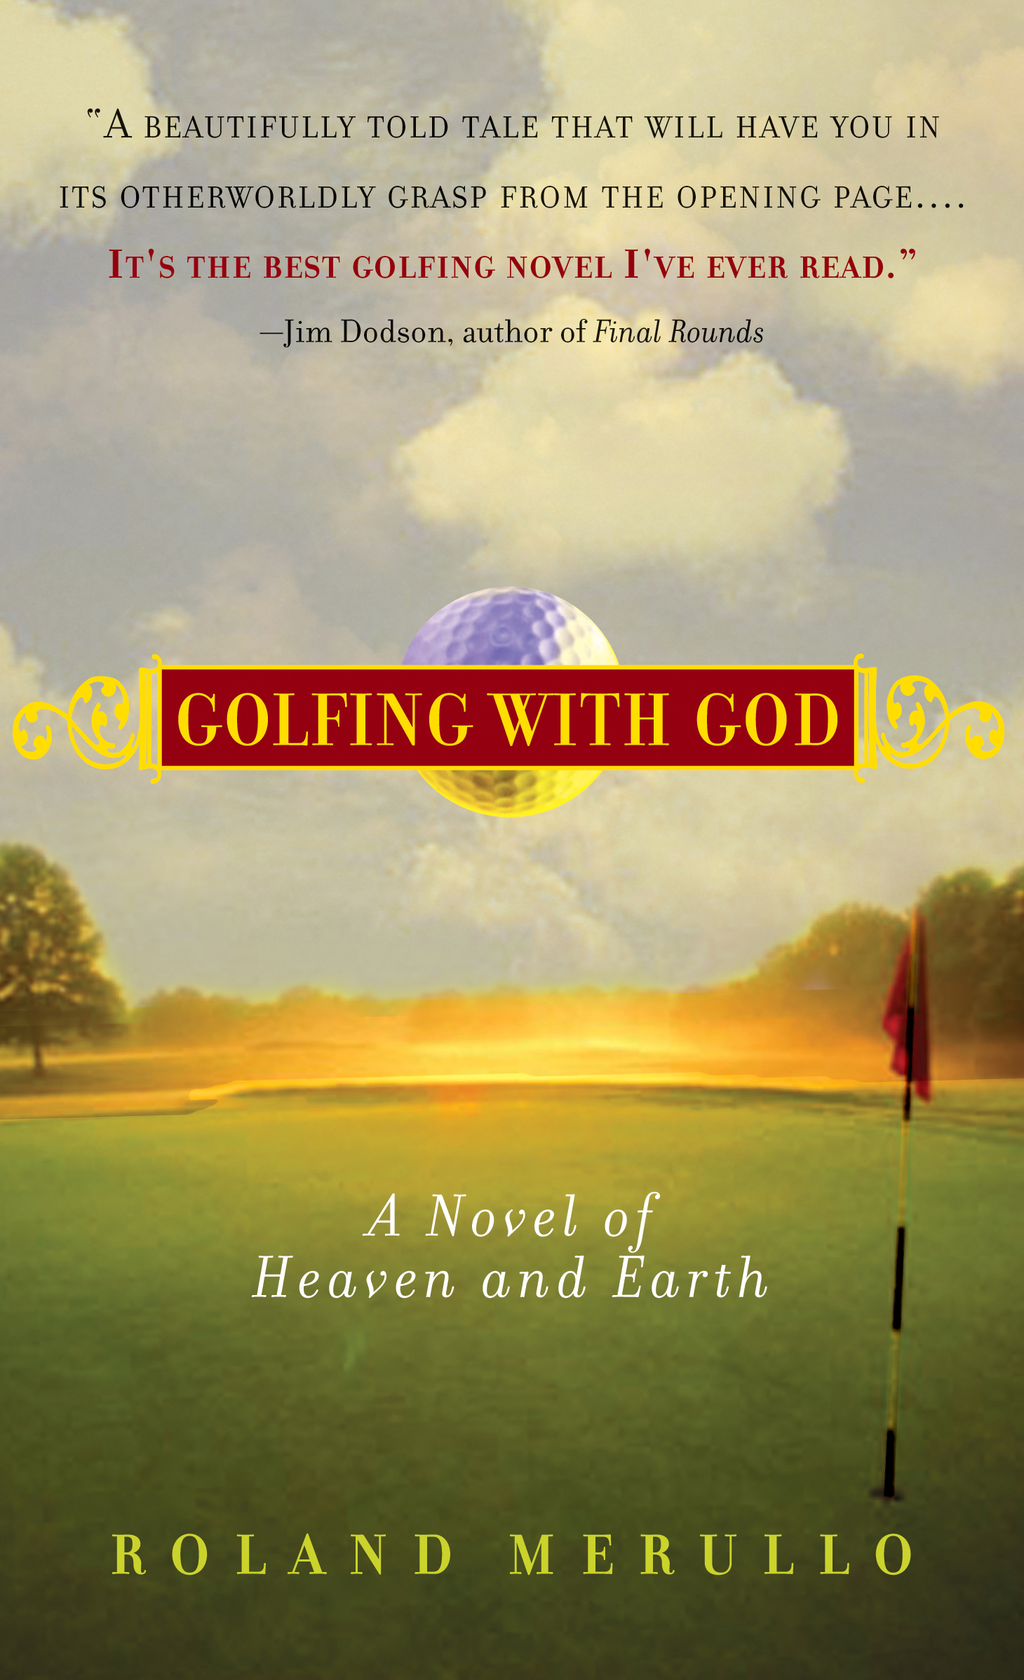 Golfing with God By: Roland Merullo